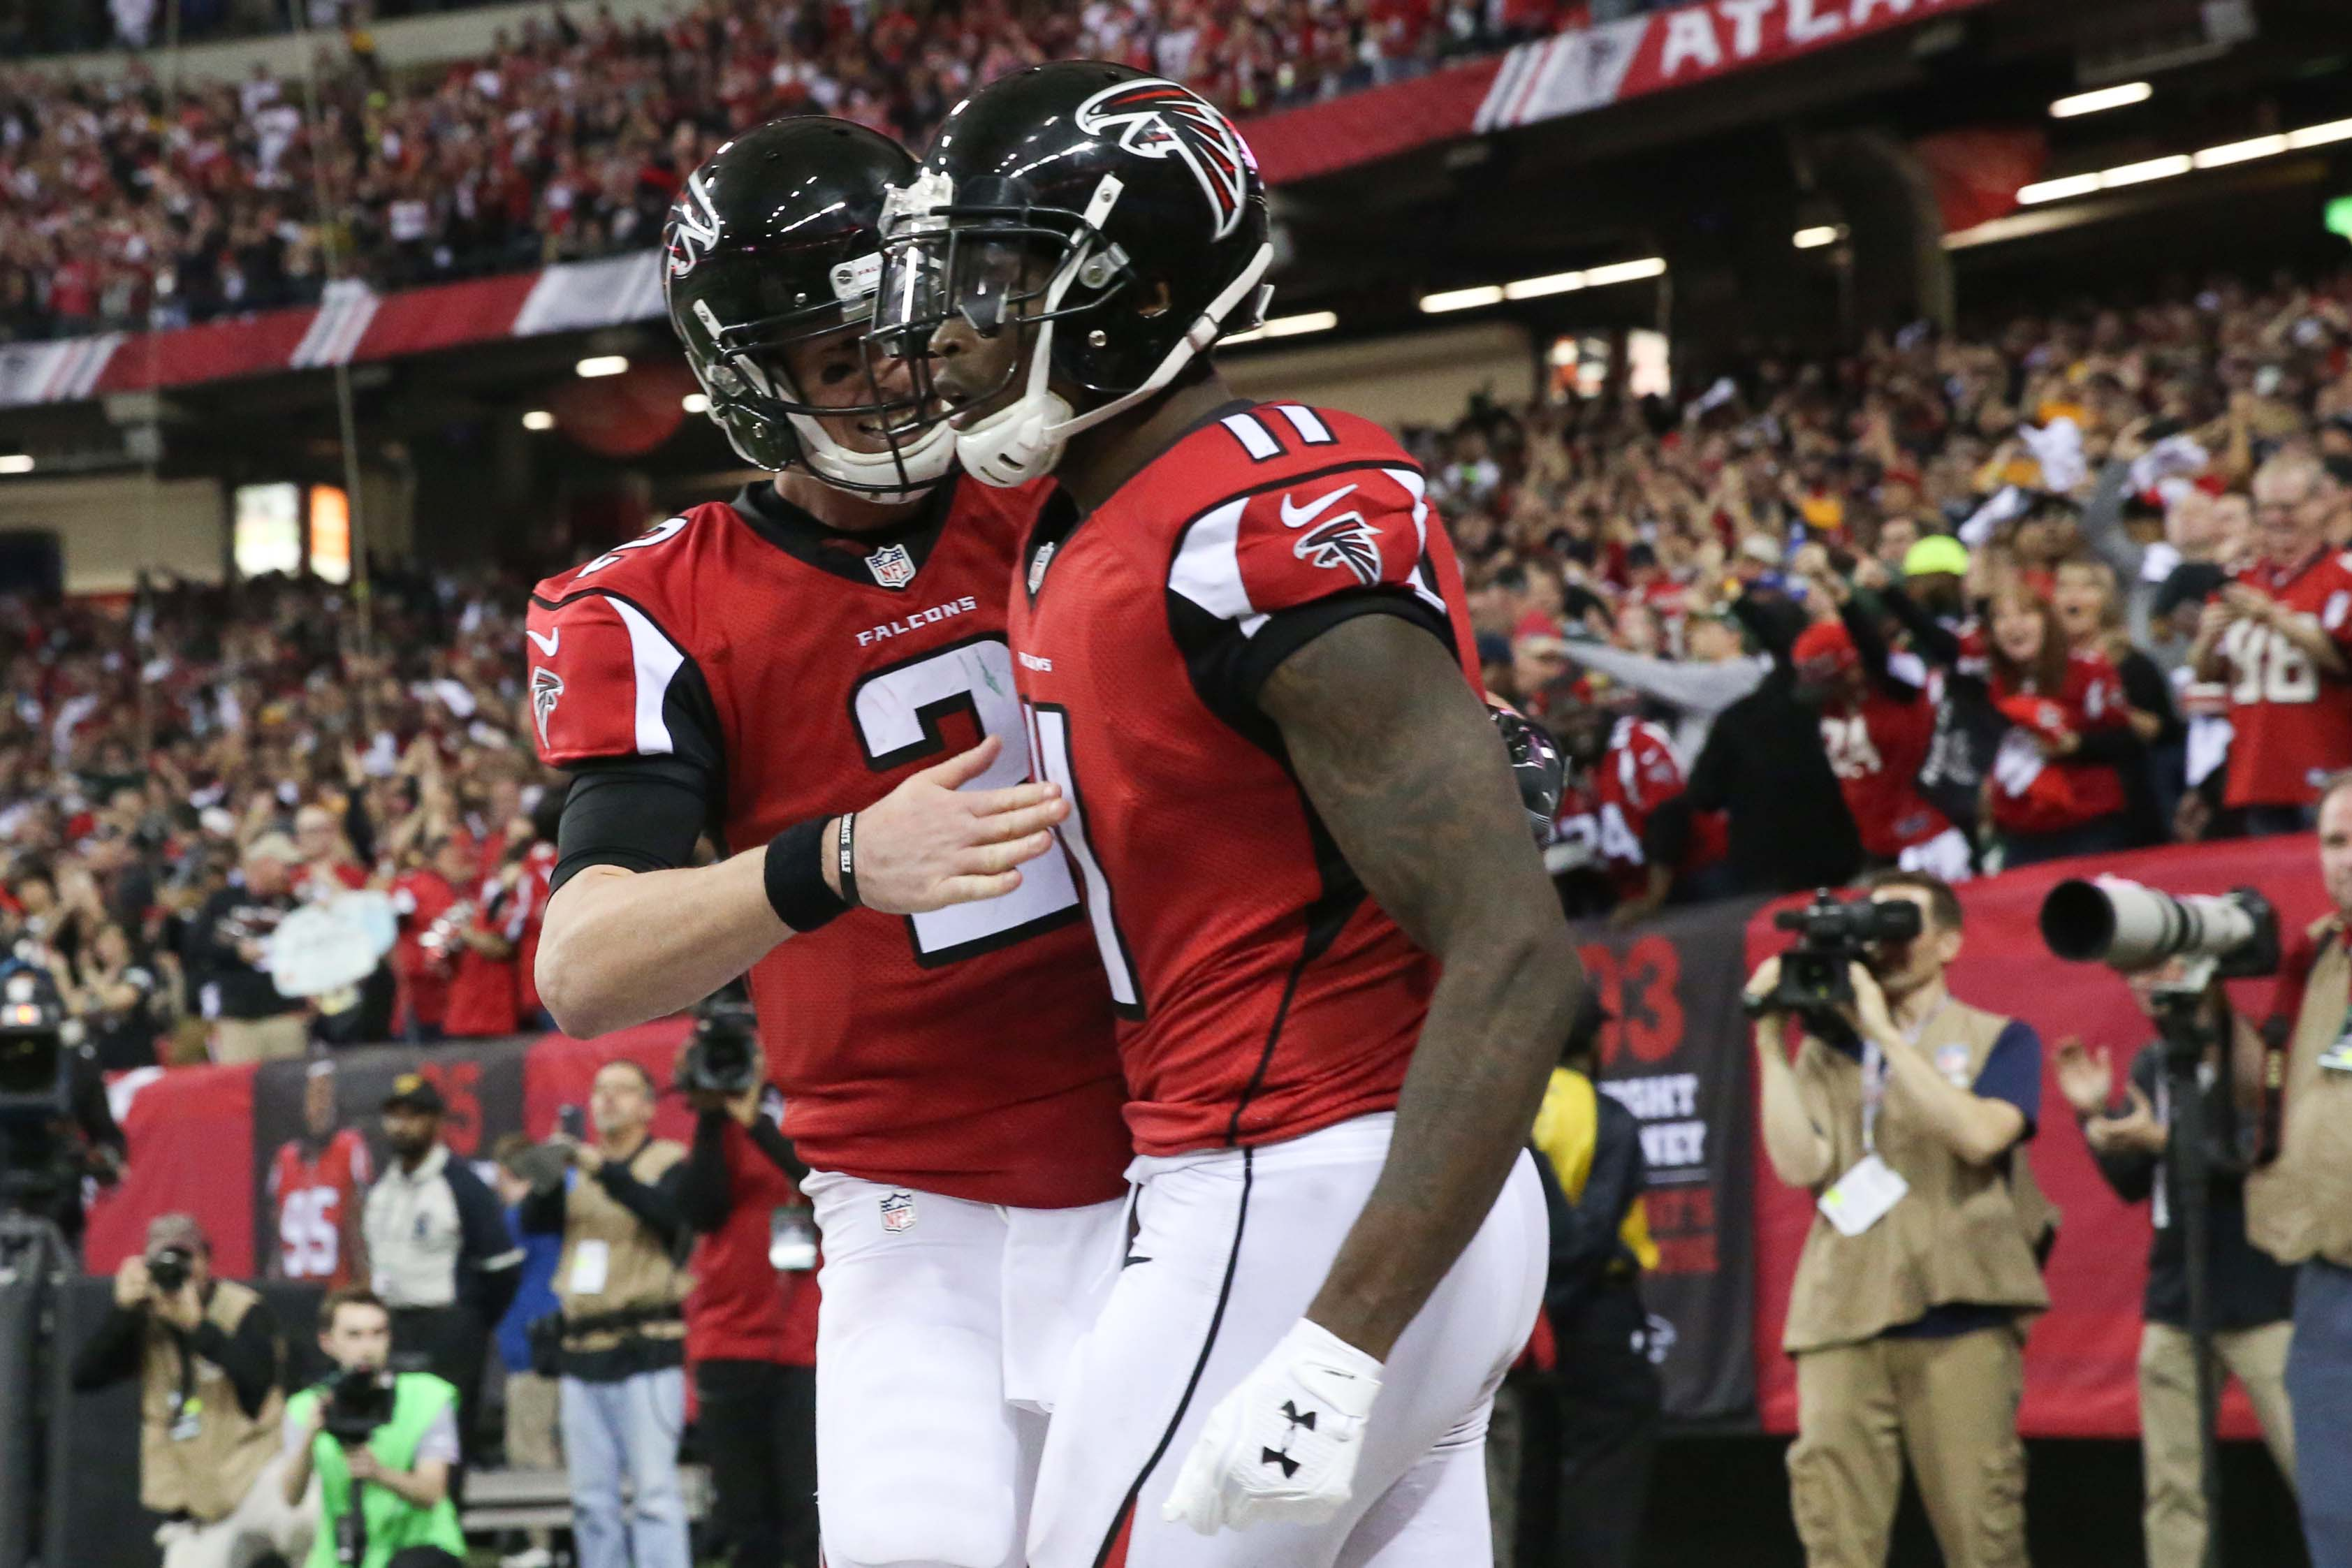 Jan 22, 2017; Atlanta, GA, USA; Atlanta Falcons wide receiver Julio Jones (11) scores a touchdown and is congratulated by quarterback Matt Ryan (2) during the third quarter against the Green Bay Packers in the 2017 NFC Championship Game at the Georgia Dome. Mandatory Credit: Jason Getz-USA TODAY Sports